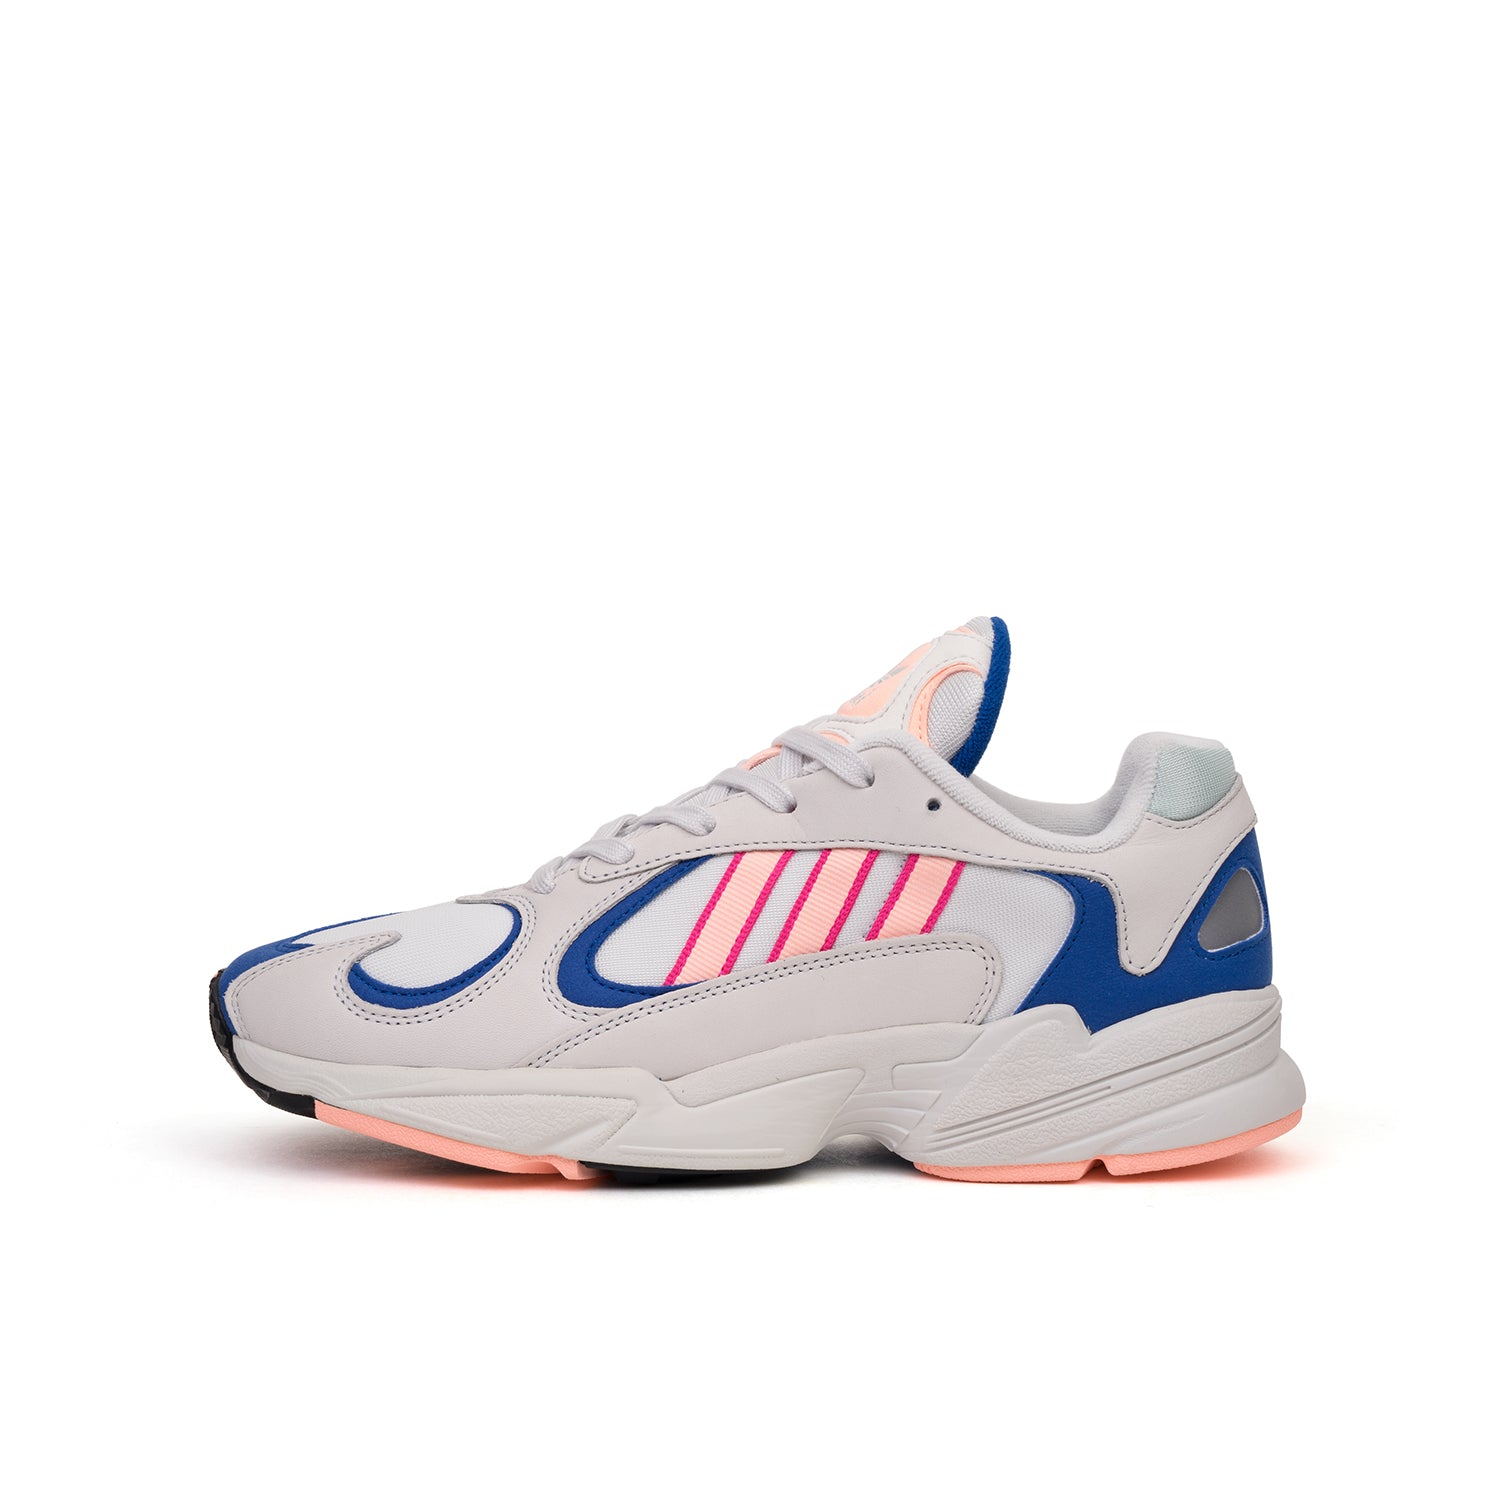 new products 1a12c 415ef adidas Originals Yung-1 Crystal White   Clear Orange – Concrete